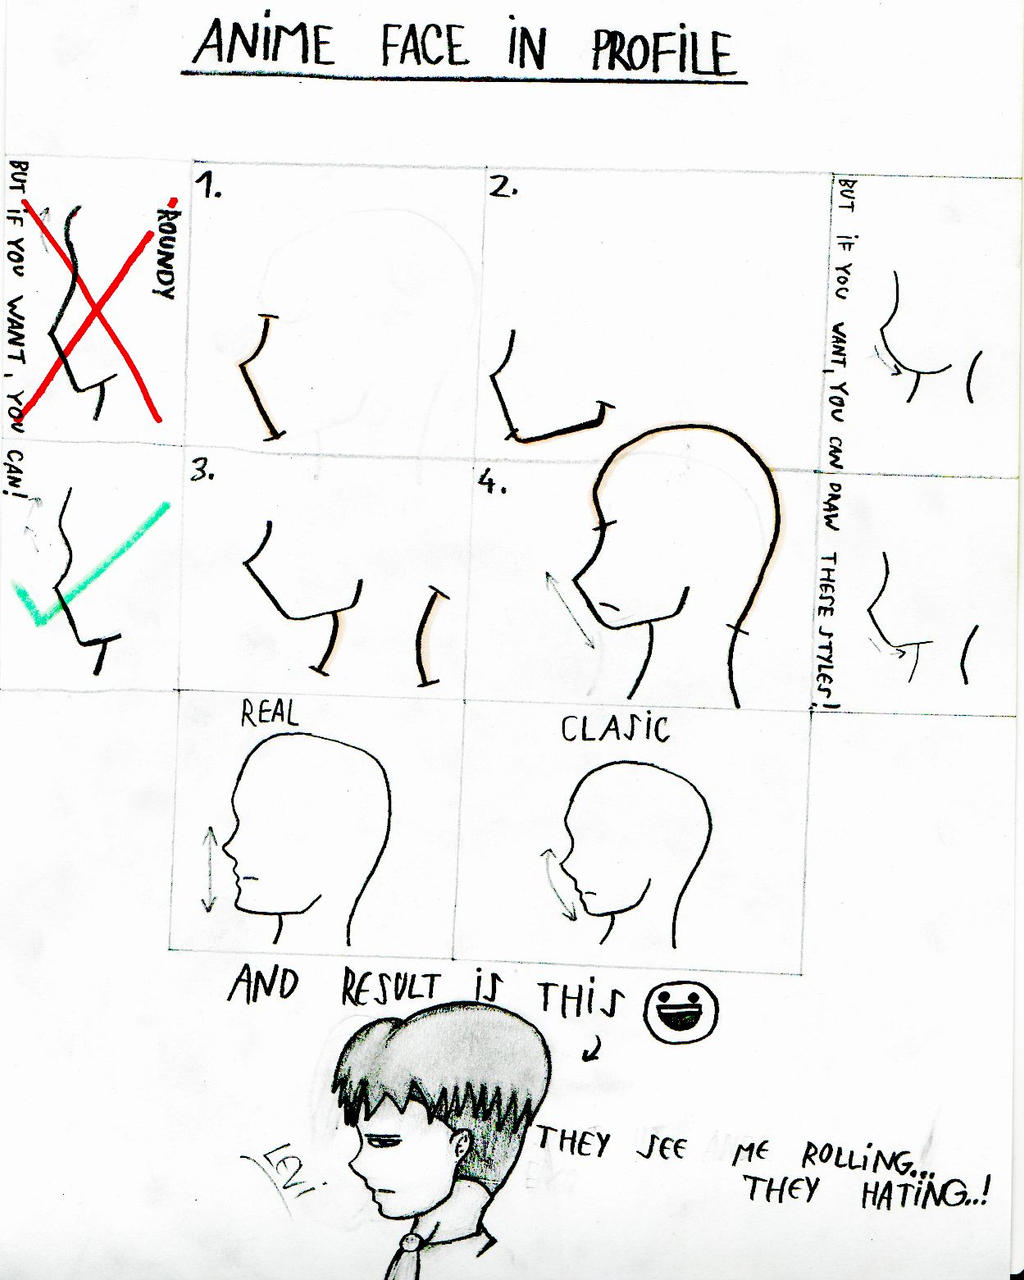 How To Draw Anime Face Is Profile By Patrisio